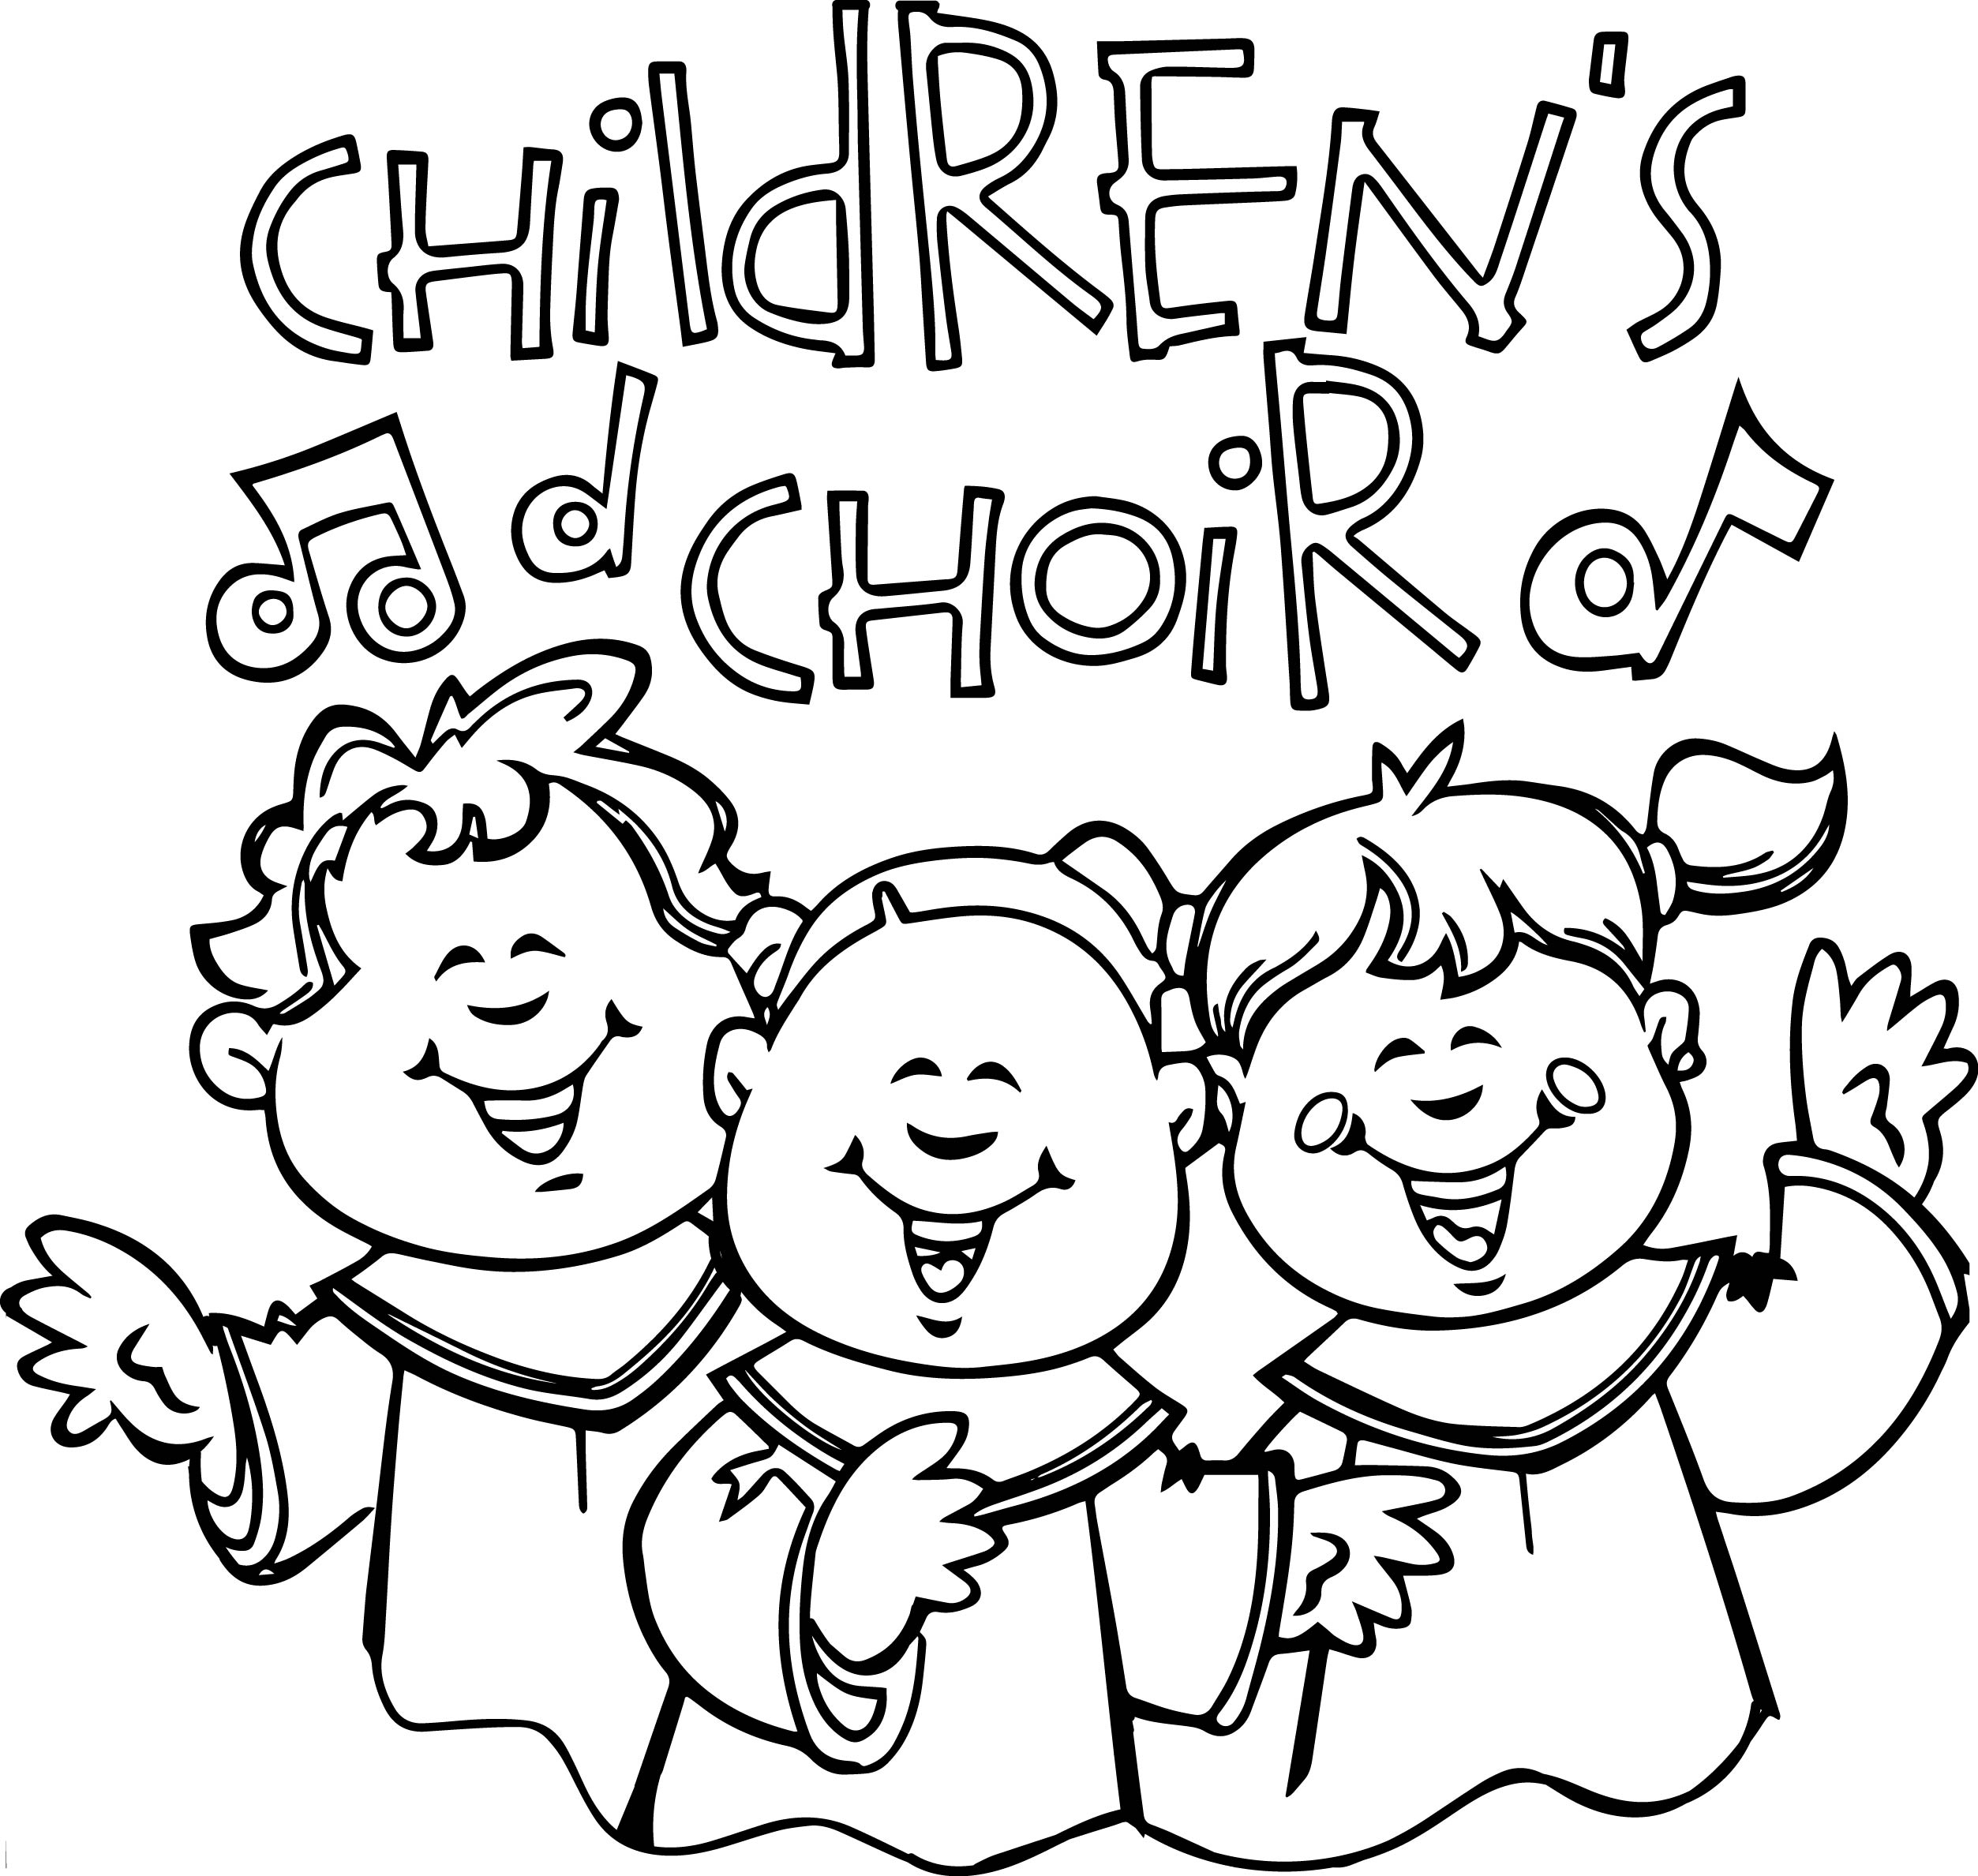 children singing in church kids coloring page wecoloringpage